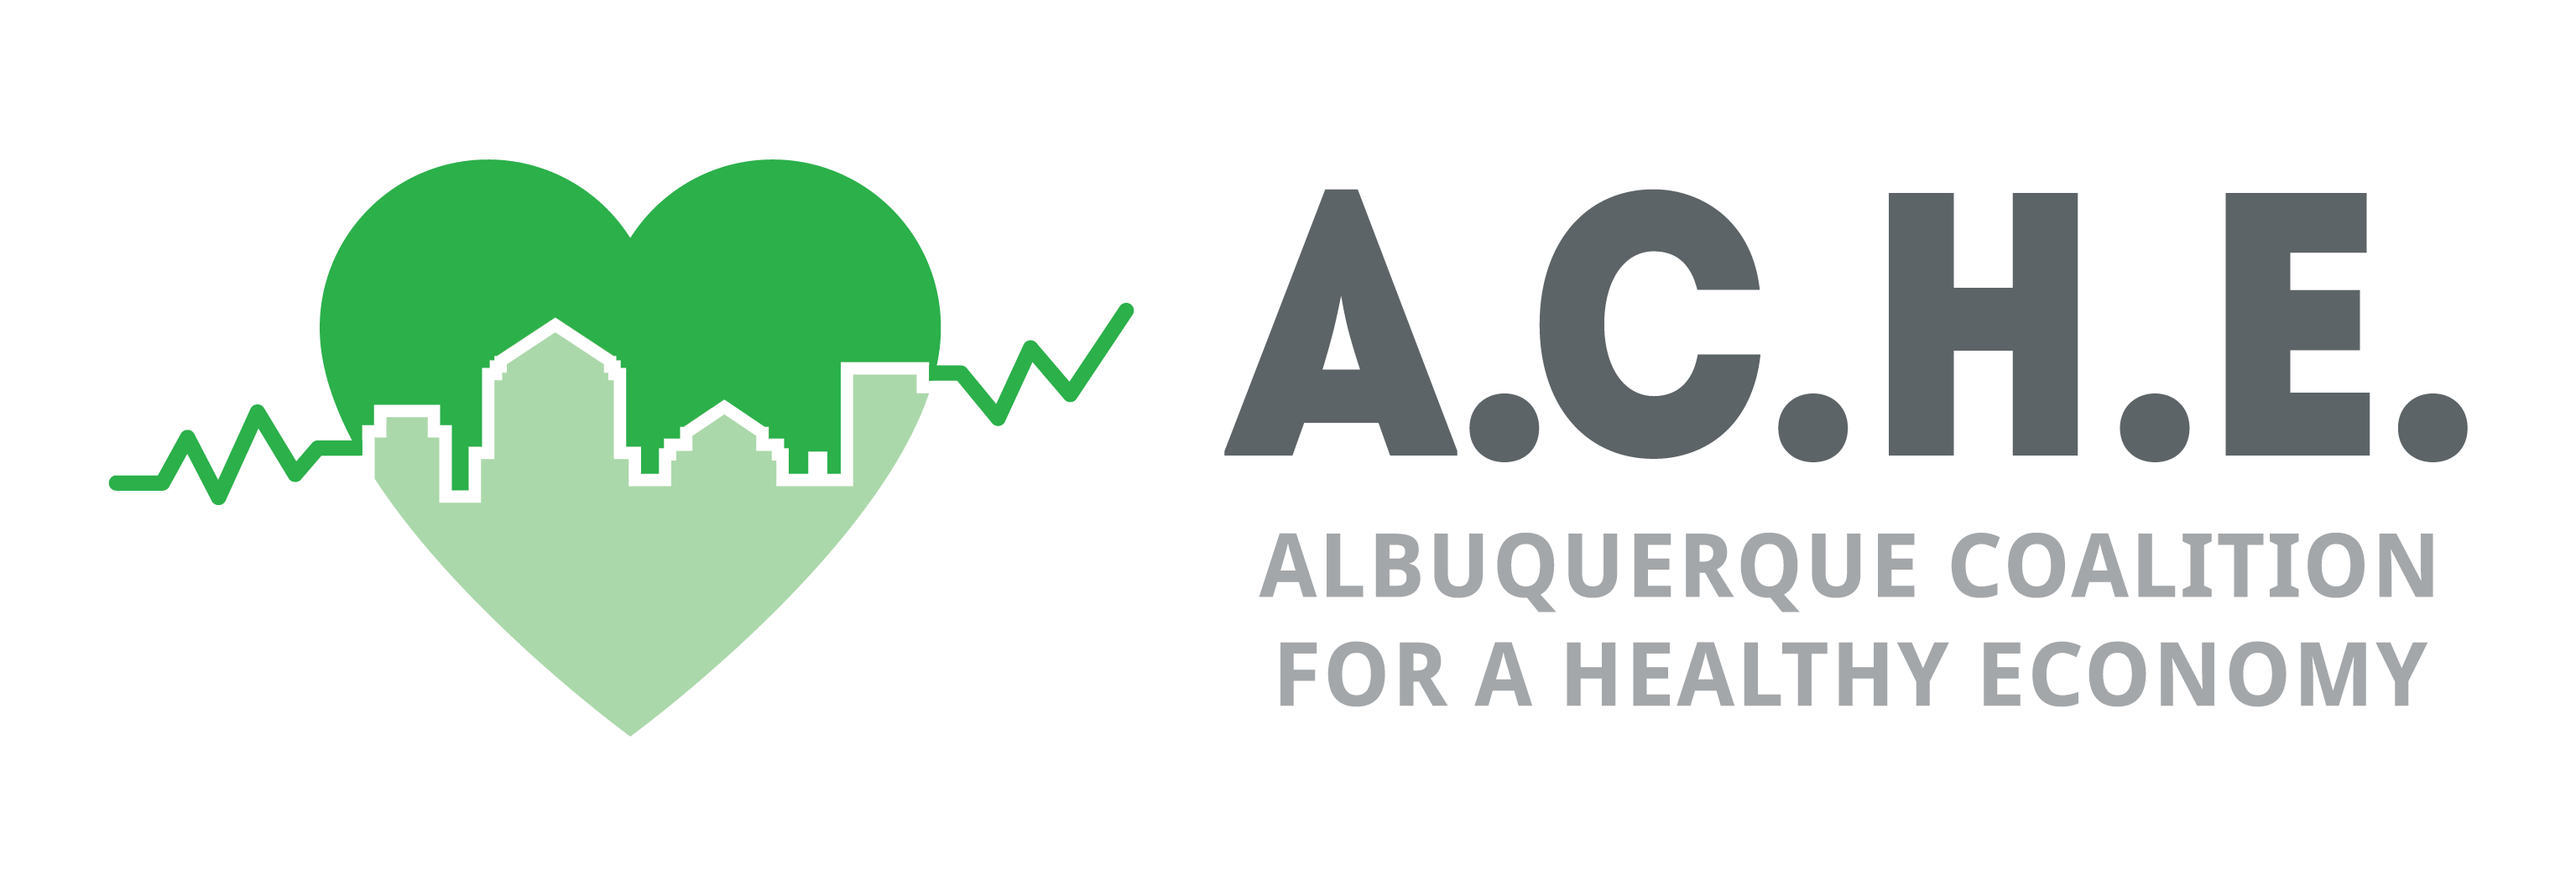 Albuquerque Coalition for a Healthy Economy